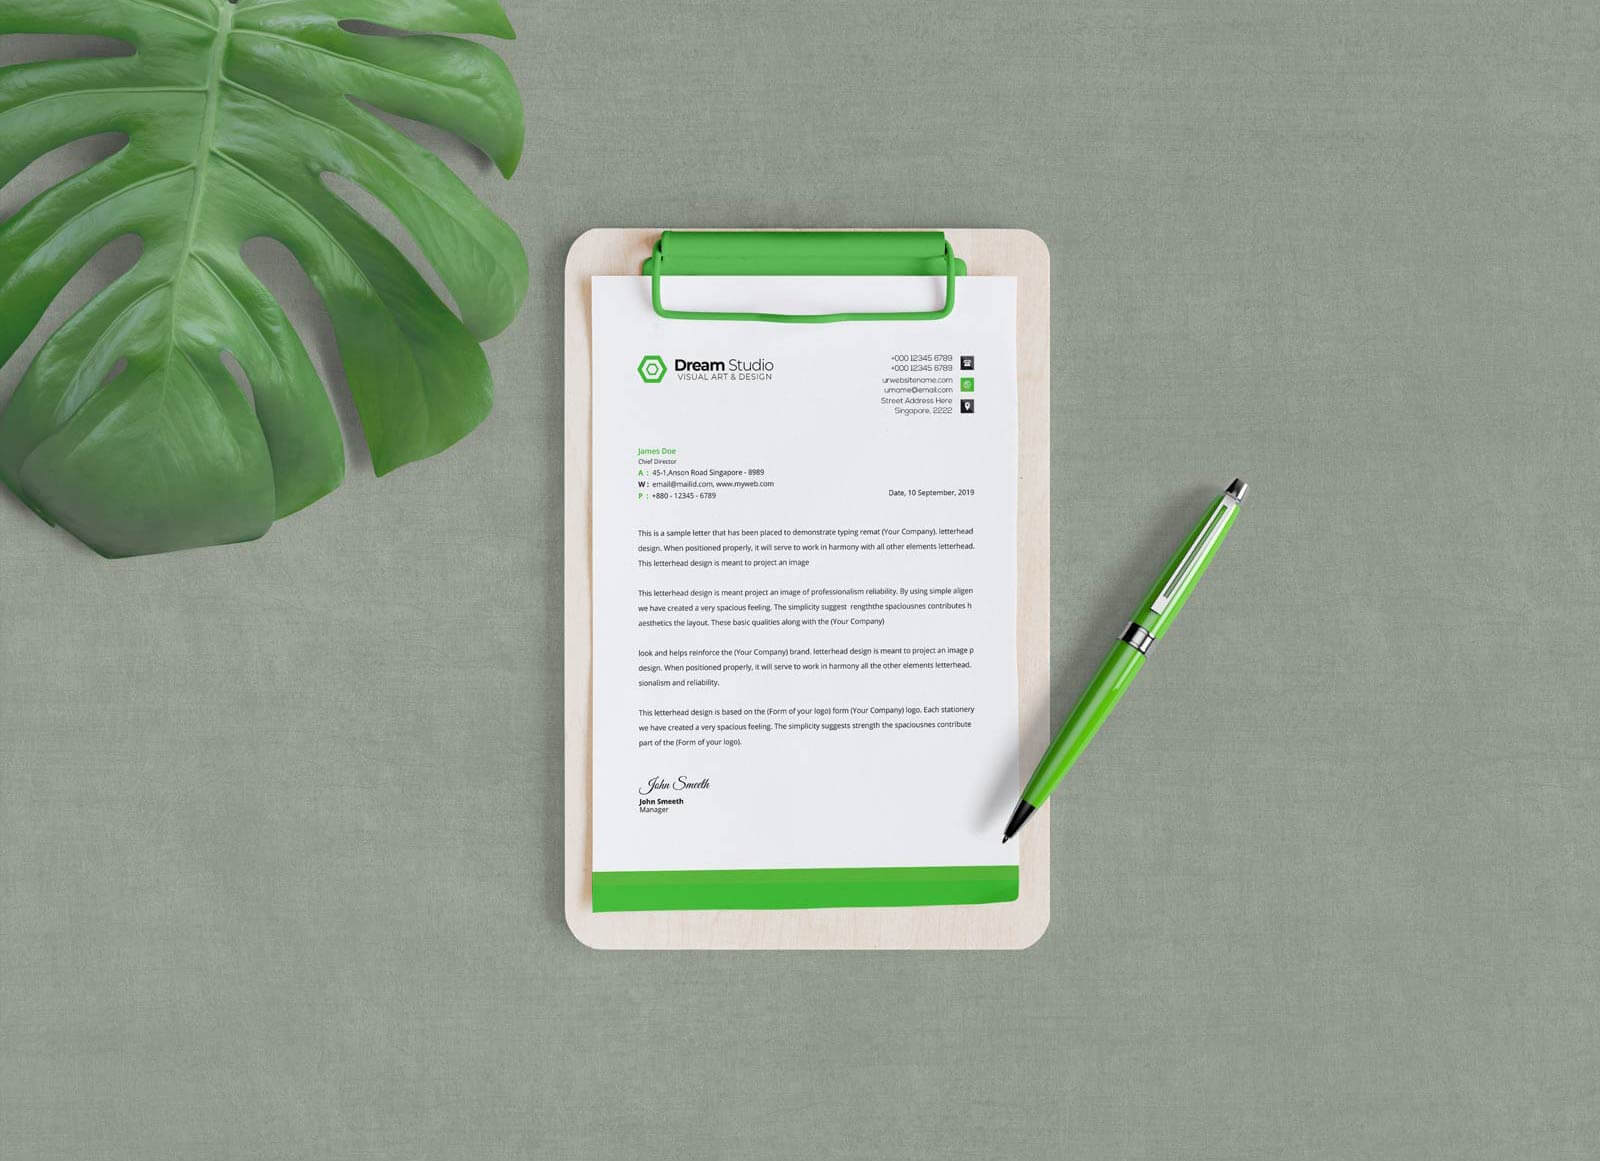 Free-A4-Size-Clipboard-Mockup-PSD-for-Official-Documents-2